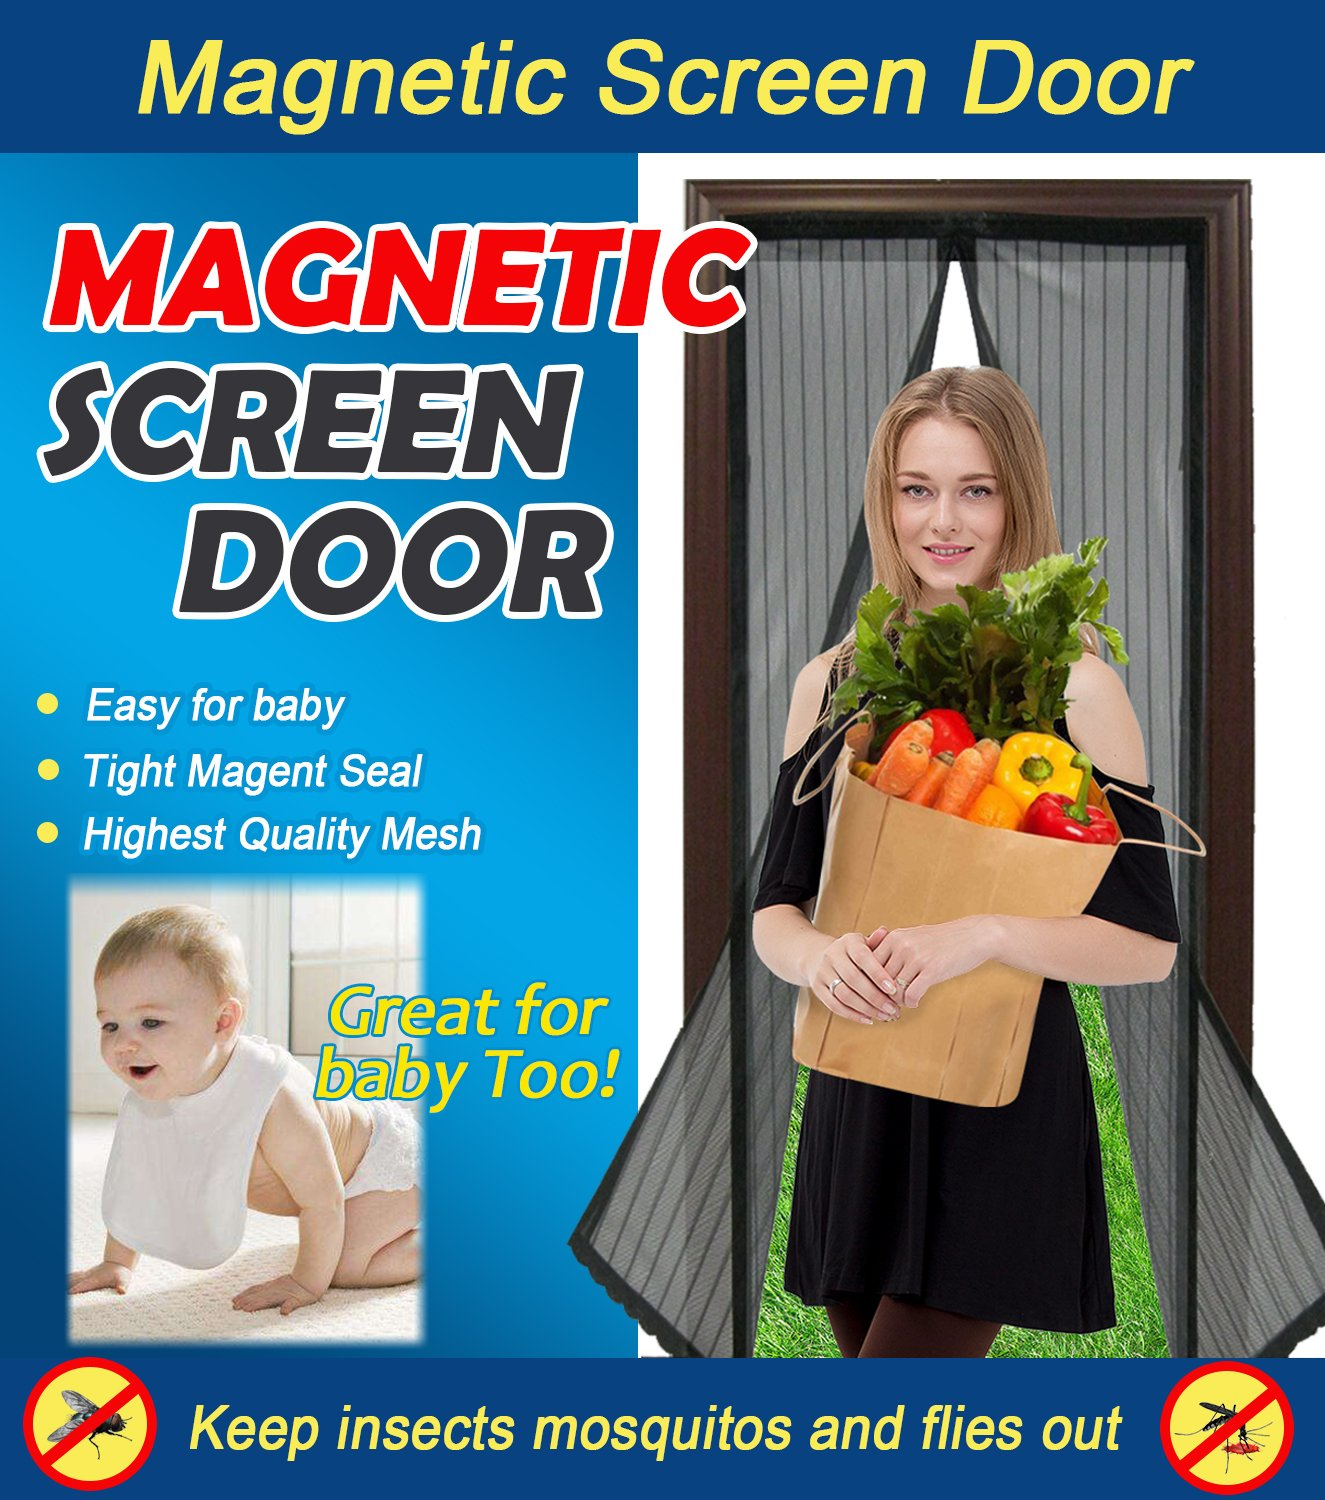 Magnetic Screen Door Heavy Duty Mesh Curtain and Full Frame Velcro Fits Door Size Up To 34''x83'' Max,Black by SOTEN